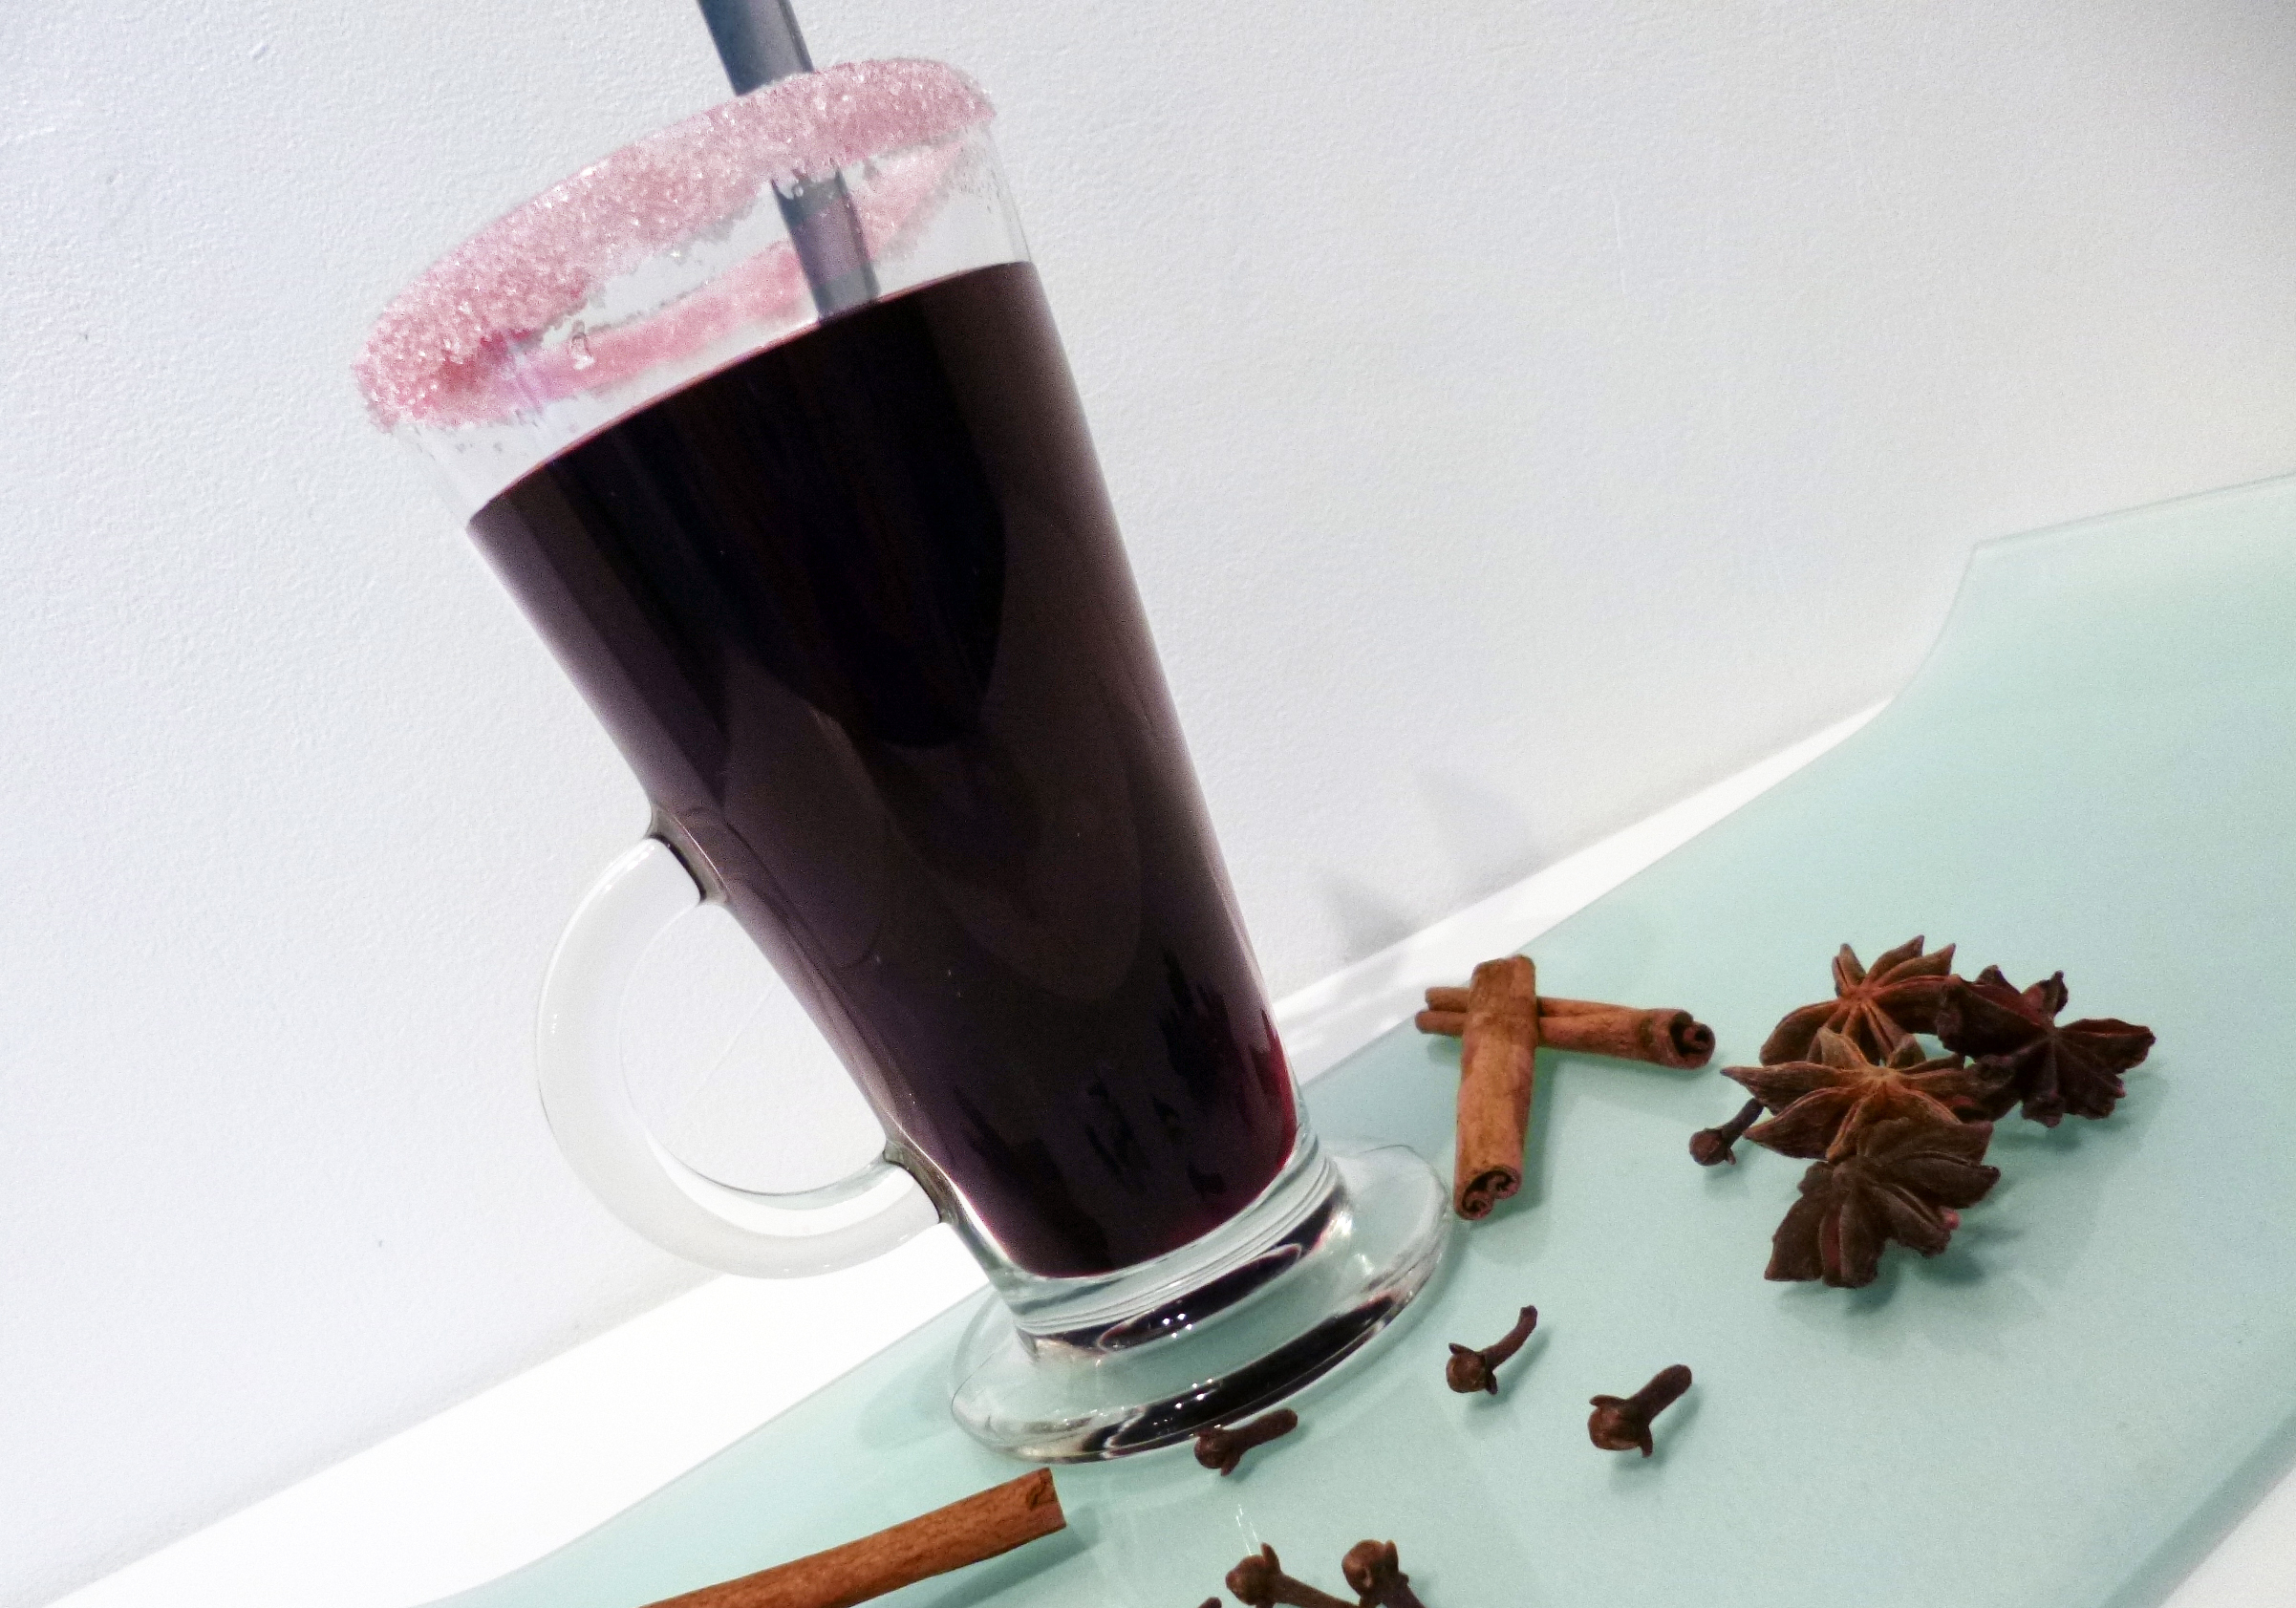 Comment faire un bon vin chaud ?